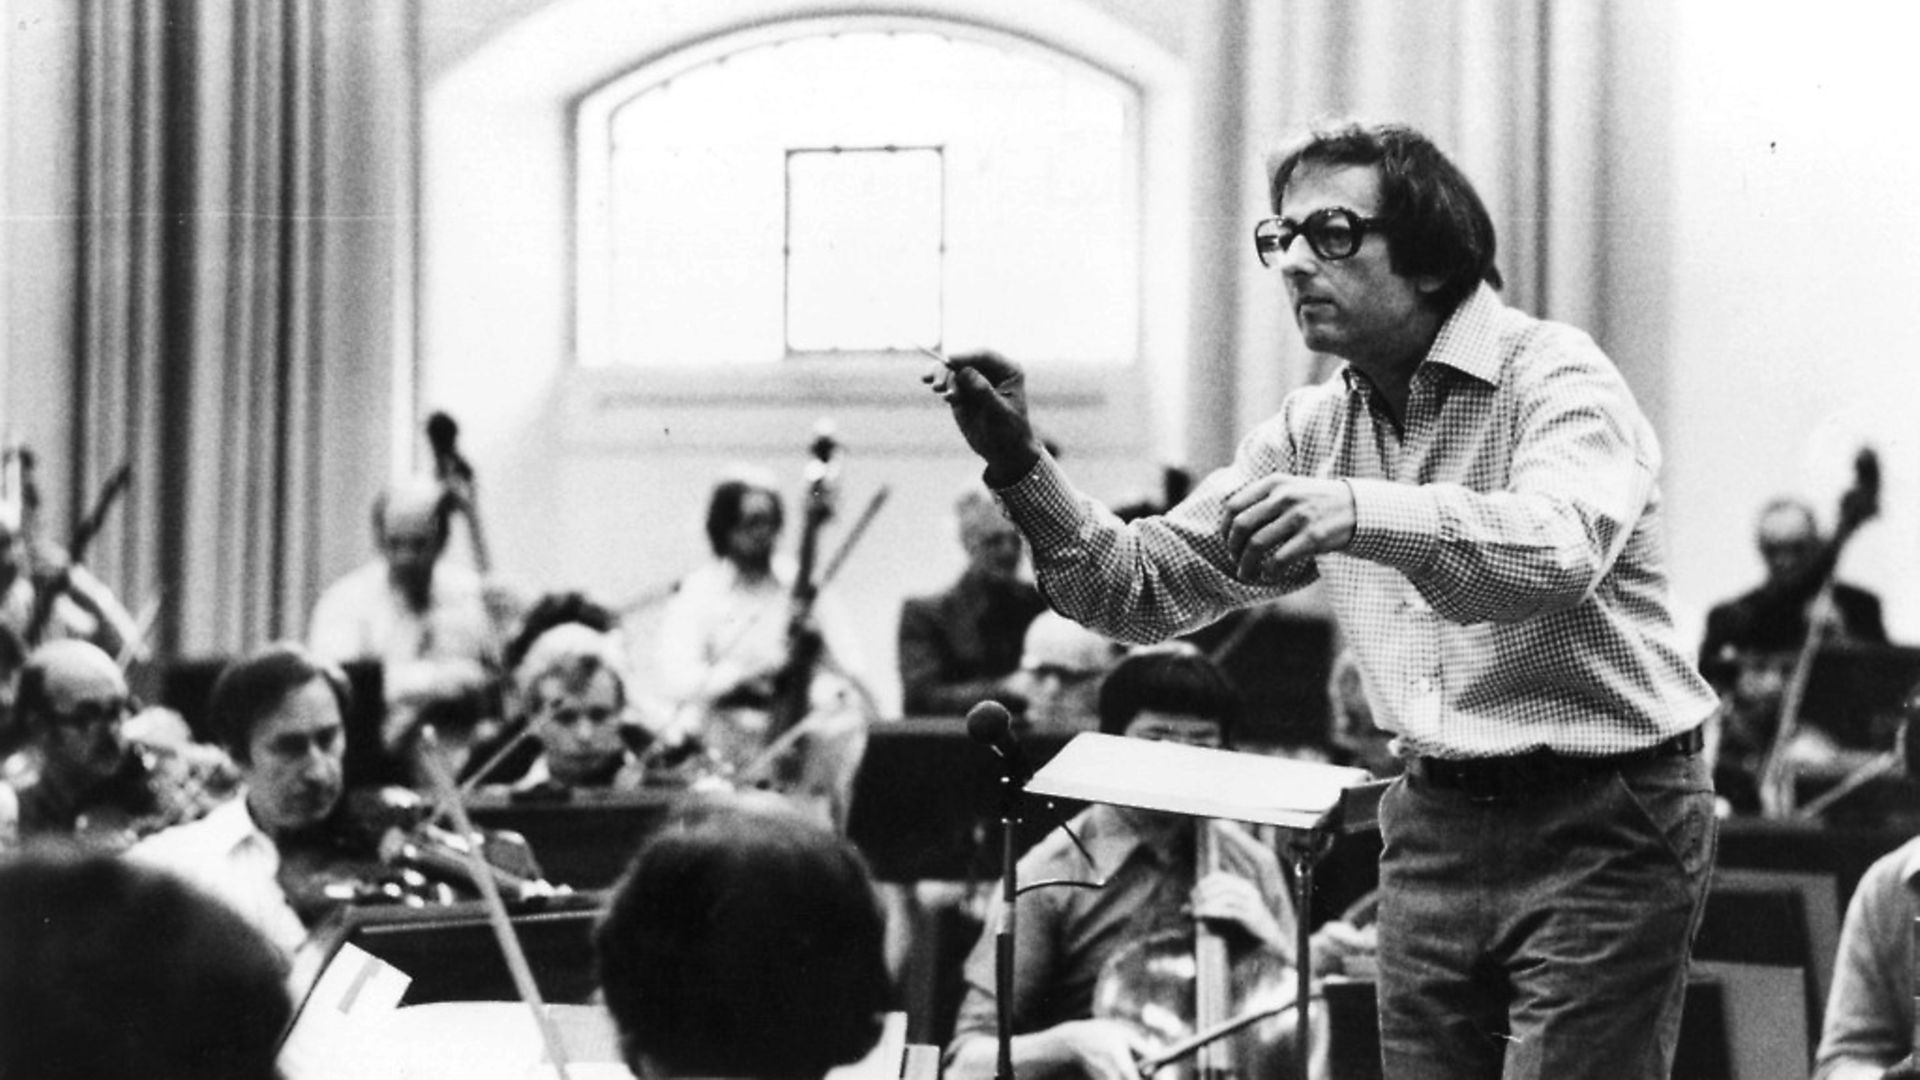 German-born American conductor and composer Andre Previn, musical director of the London Symphony Orchestra (1968 - 1979. Photo: John Minihan/Getty Images - Credit: Getty Images